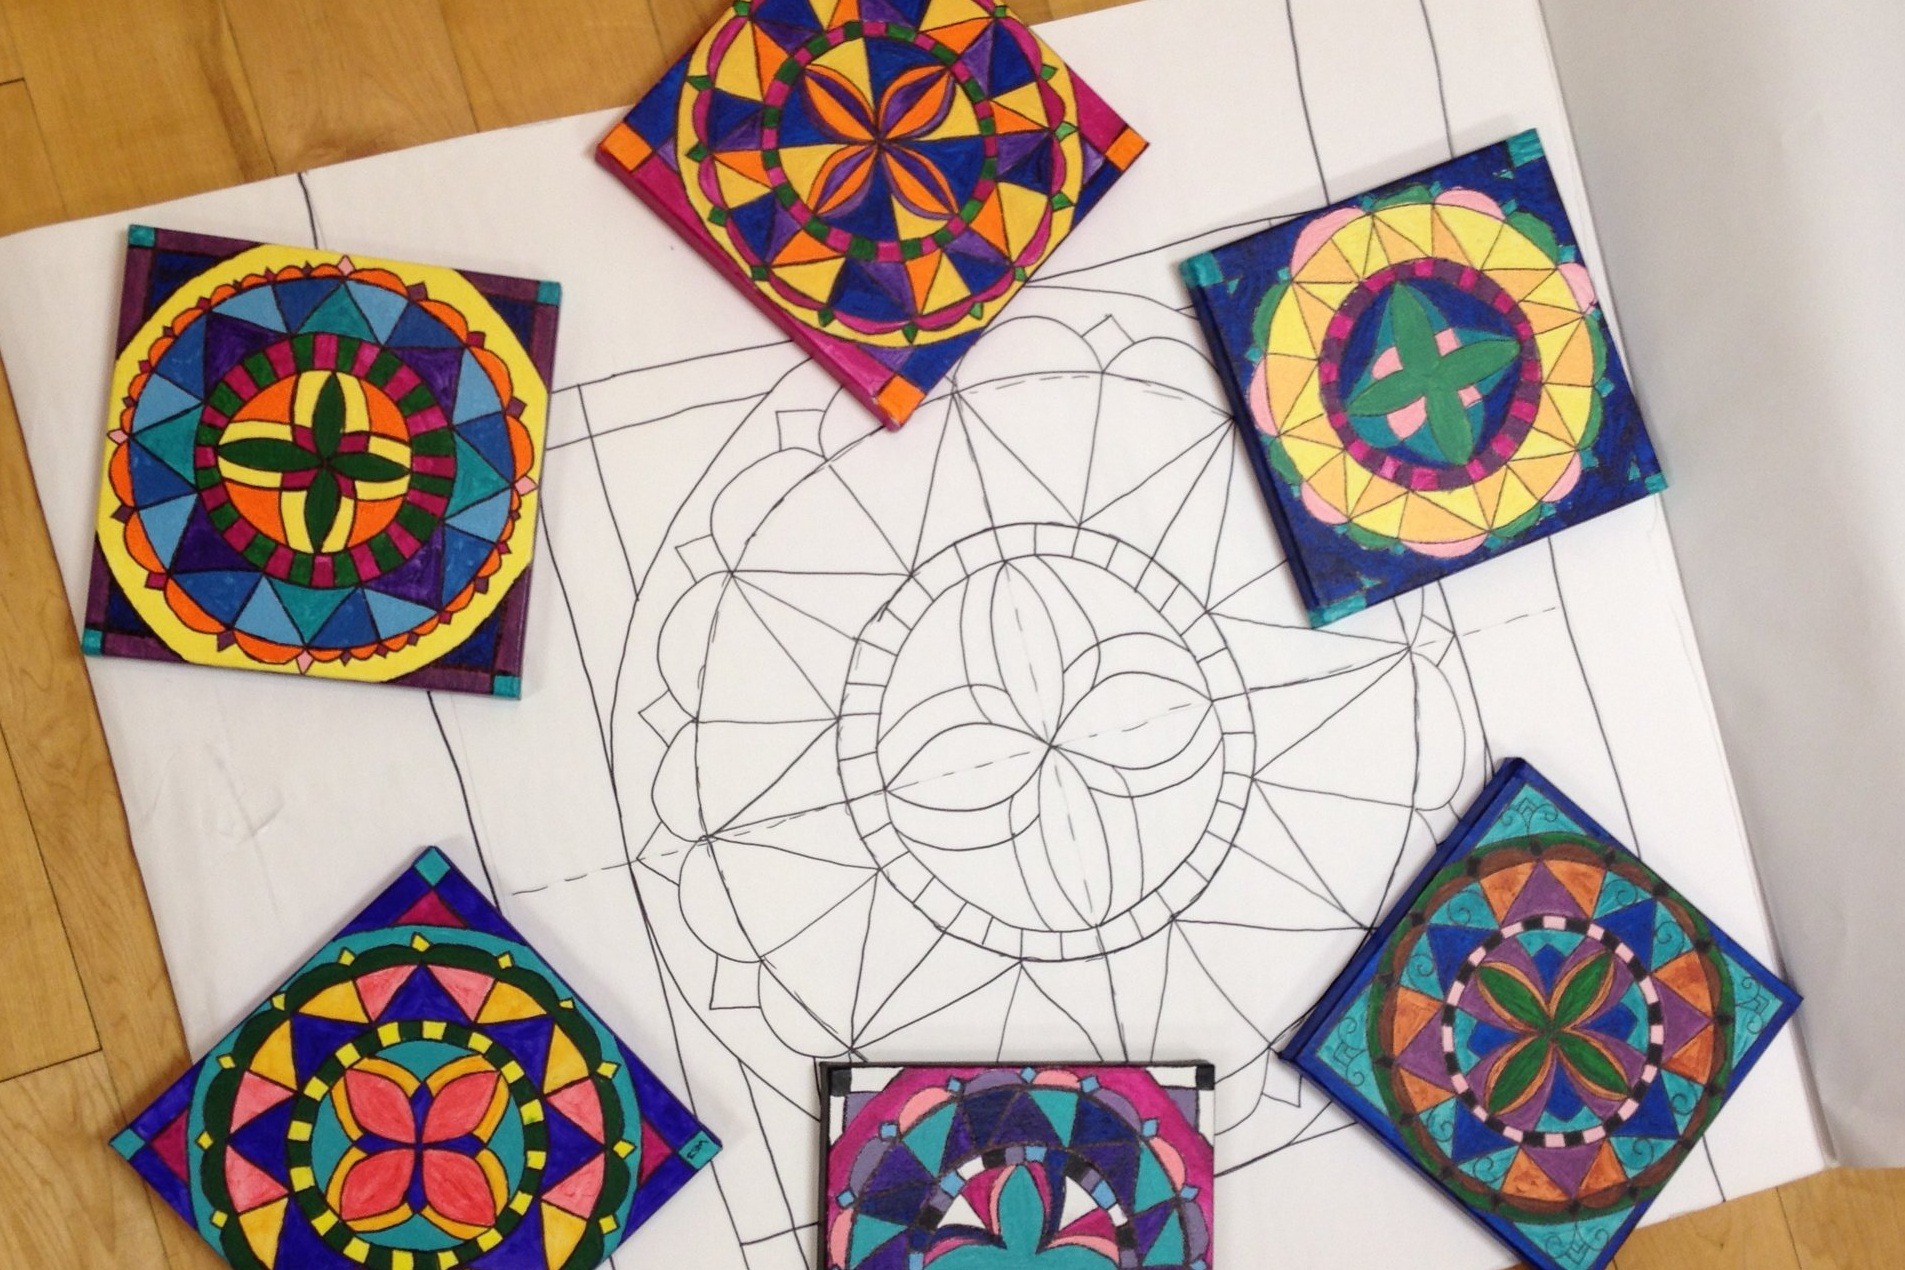 Canvases created at a previous Mandala Painting Party